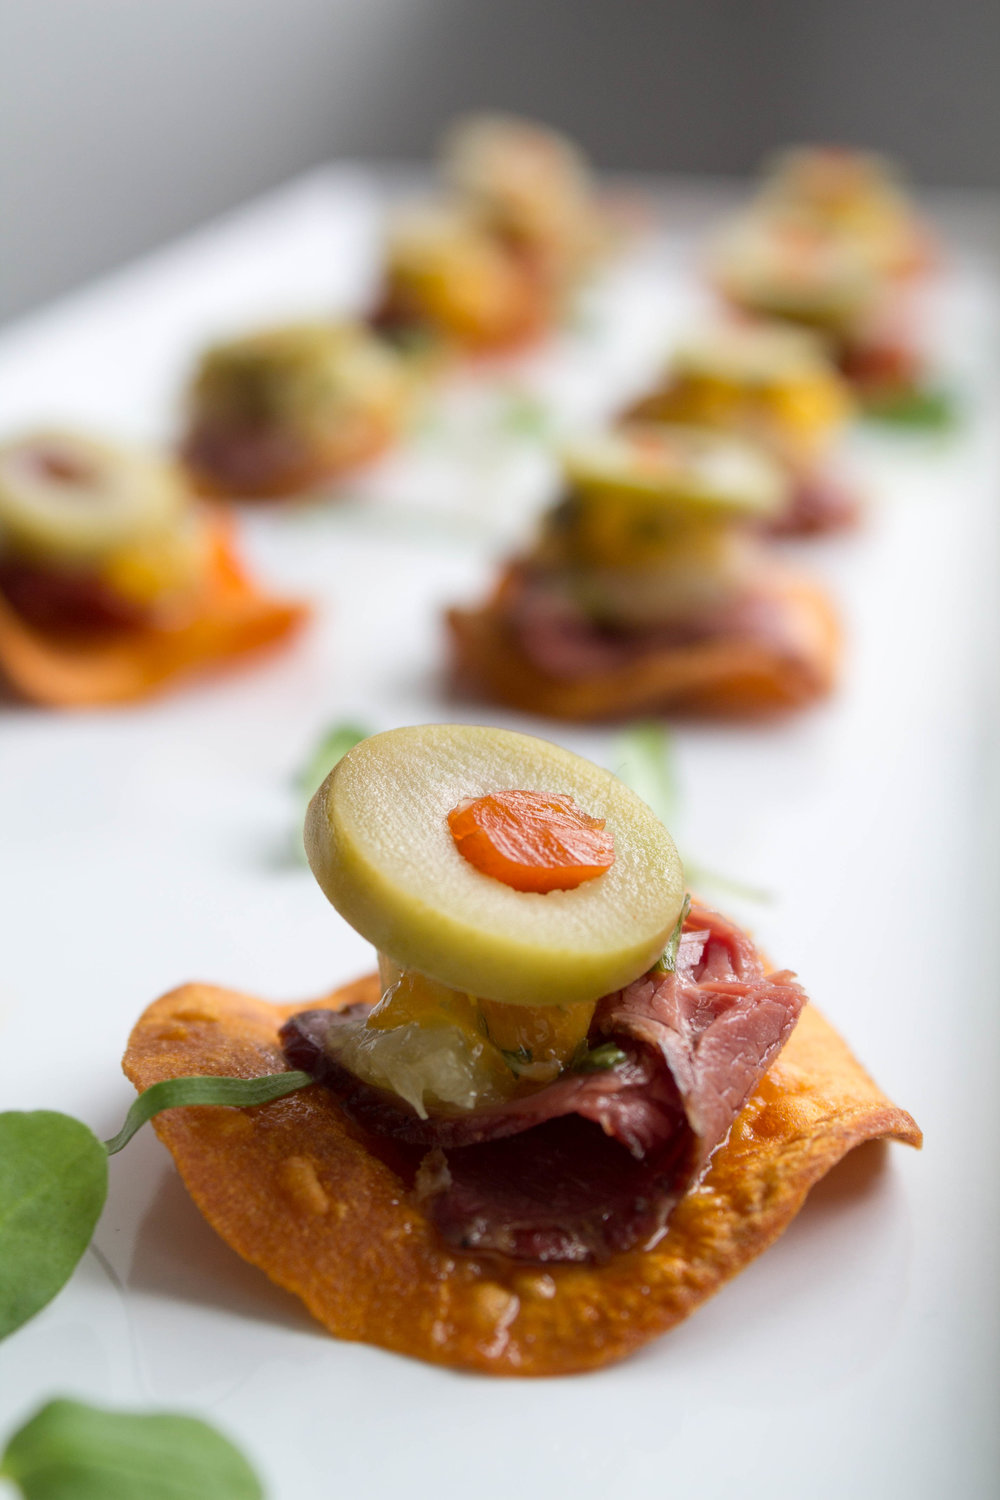 - Smoked duck, citrus-olive relish on a sweet potato chip